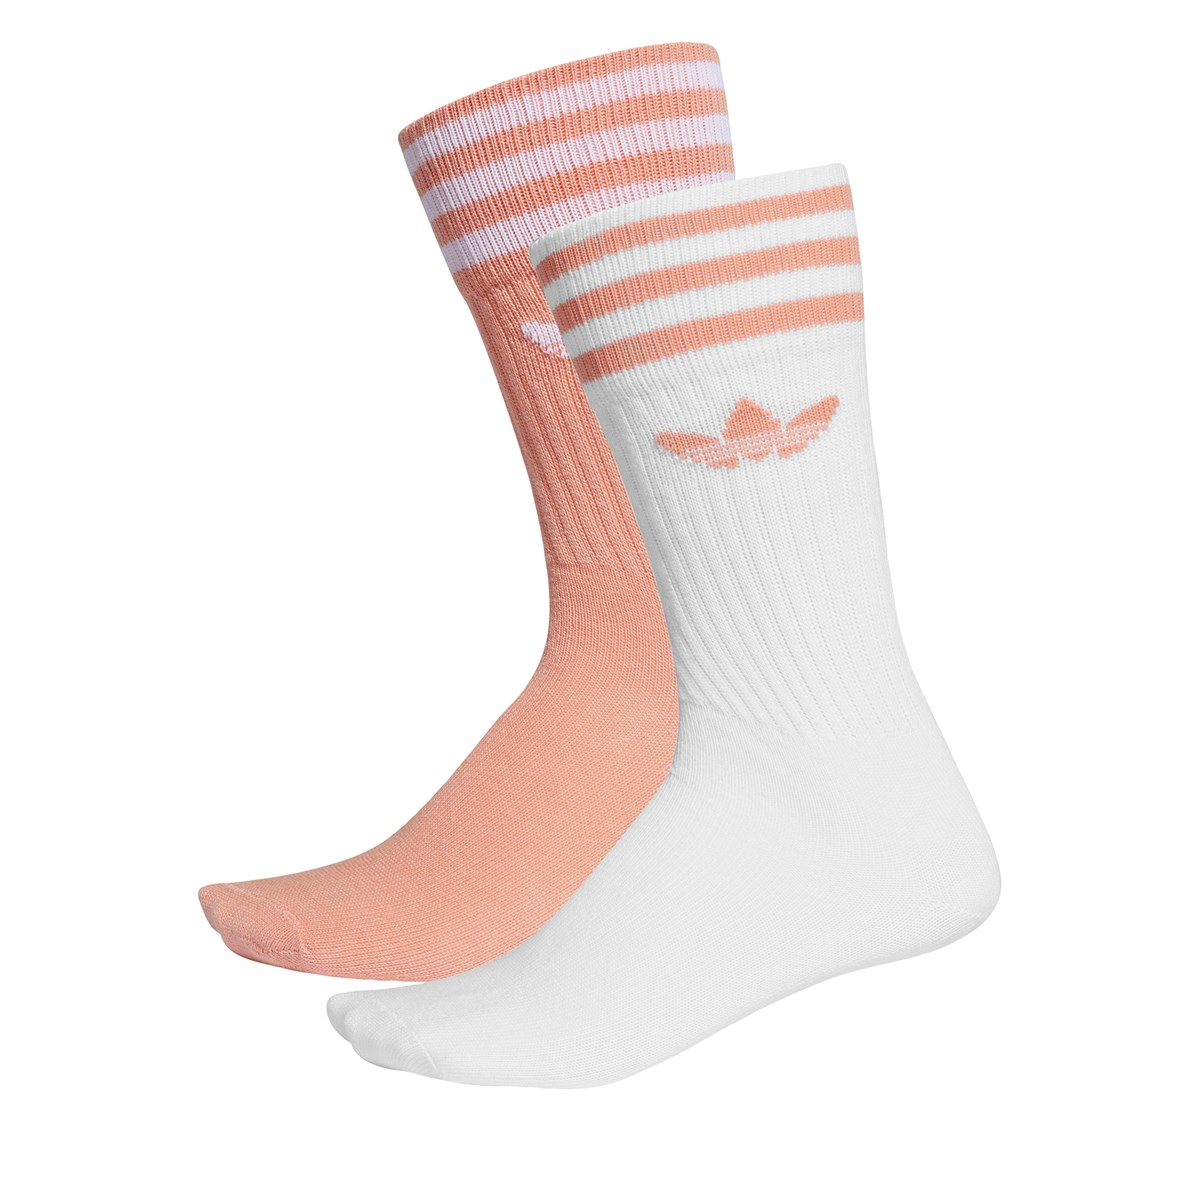 Women's 2 pair pack of ribbed crew socks